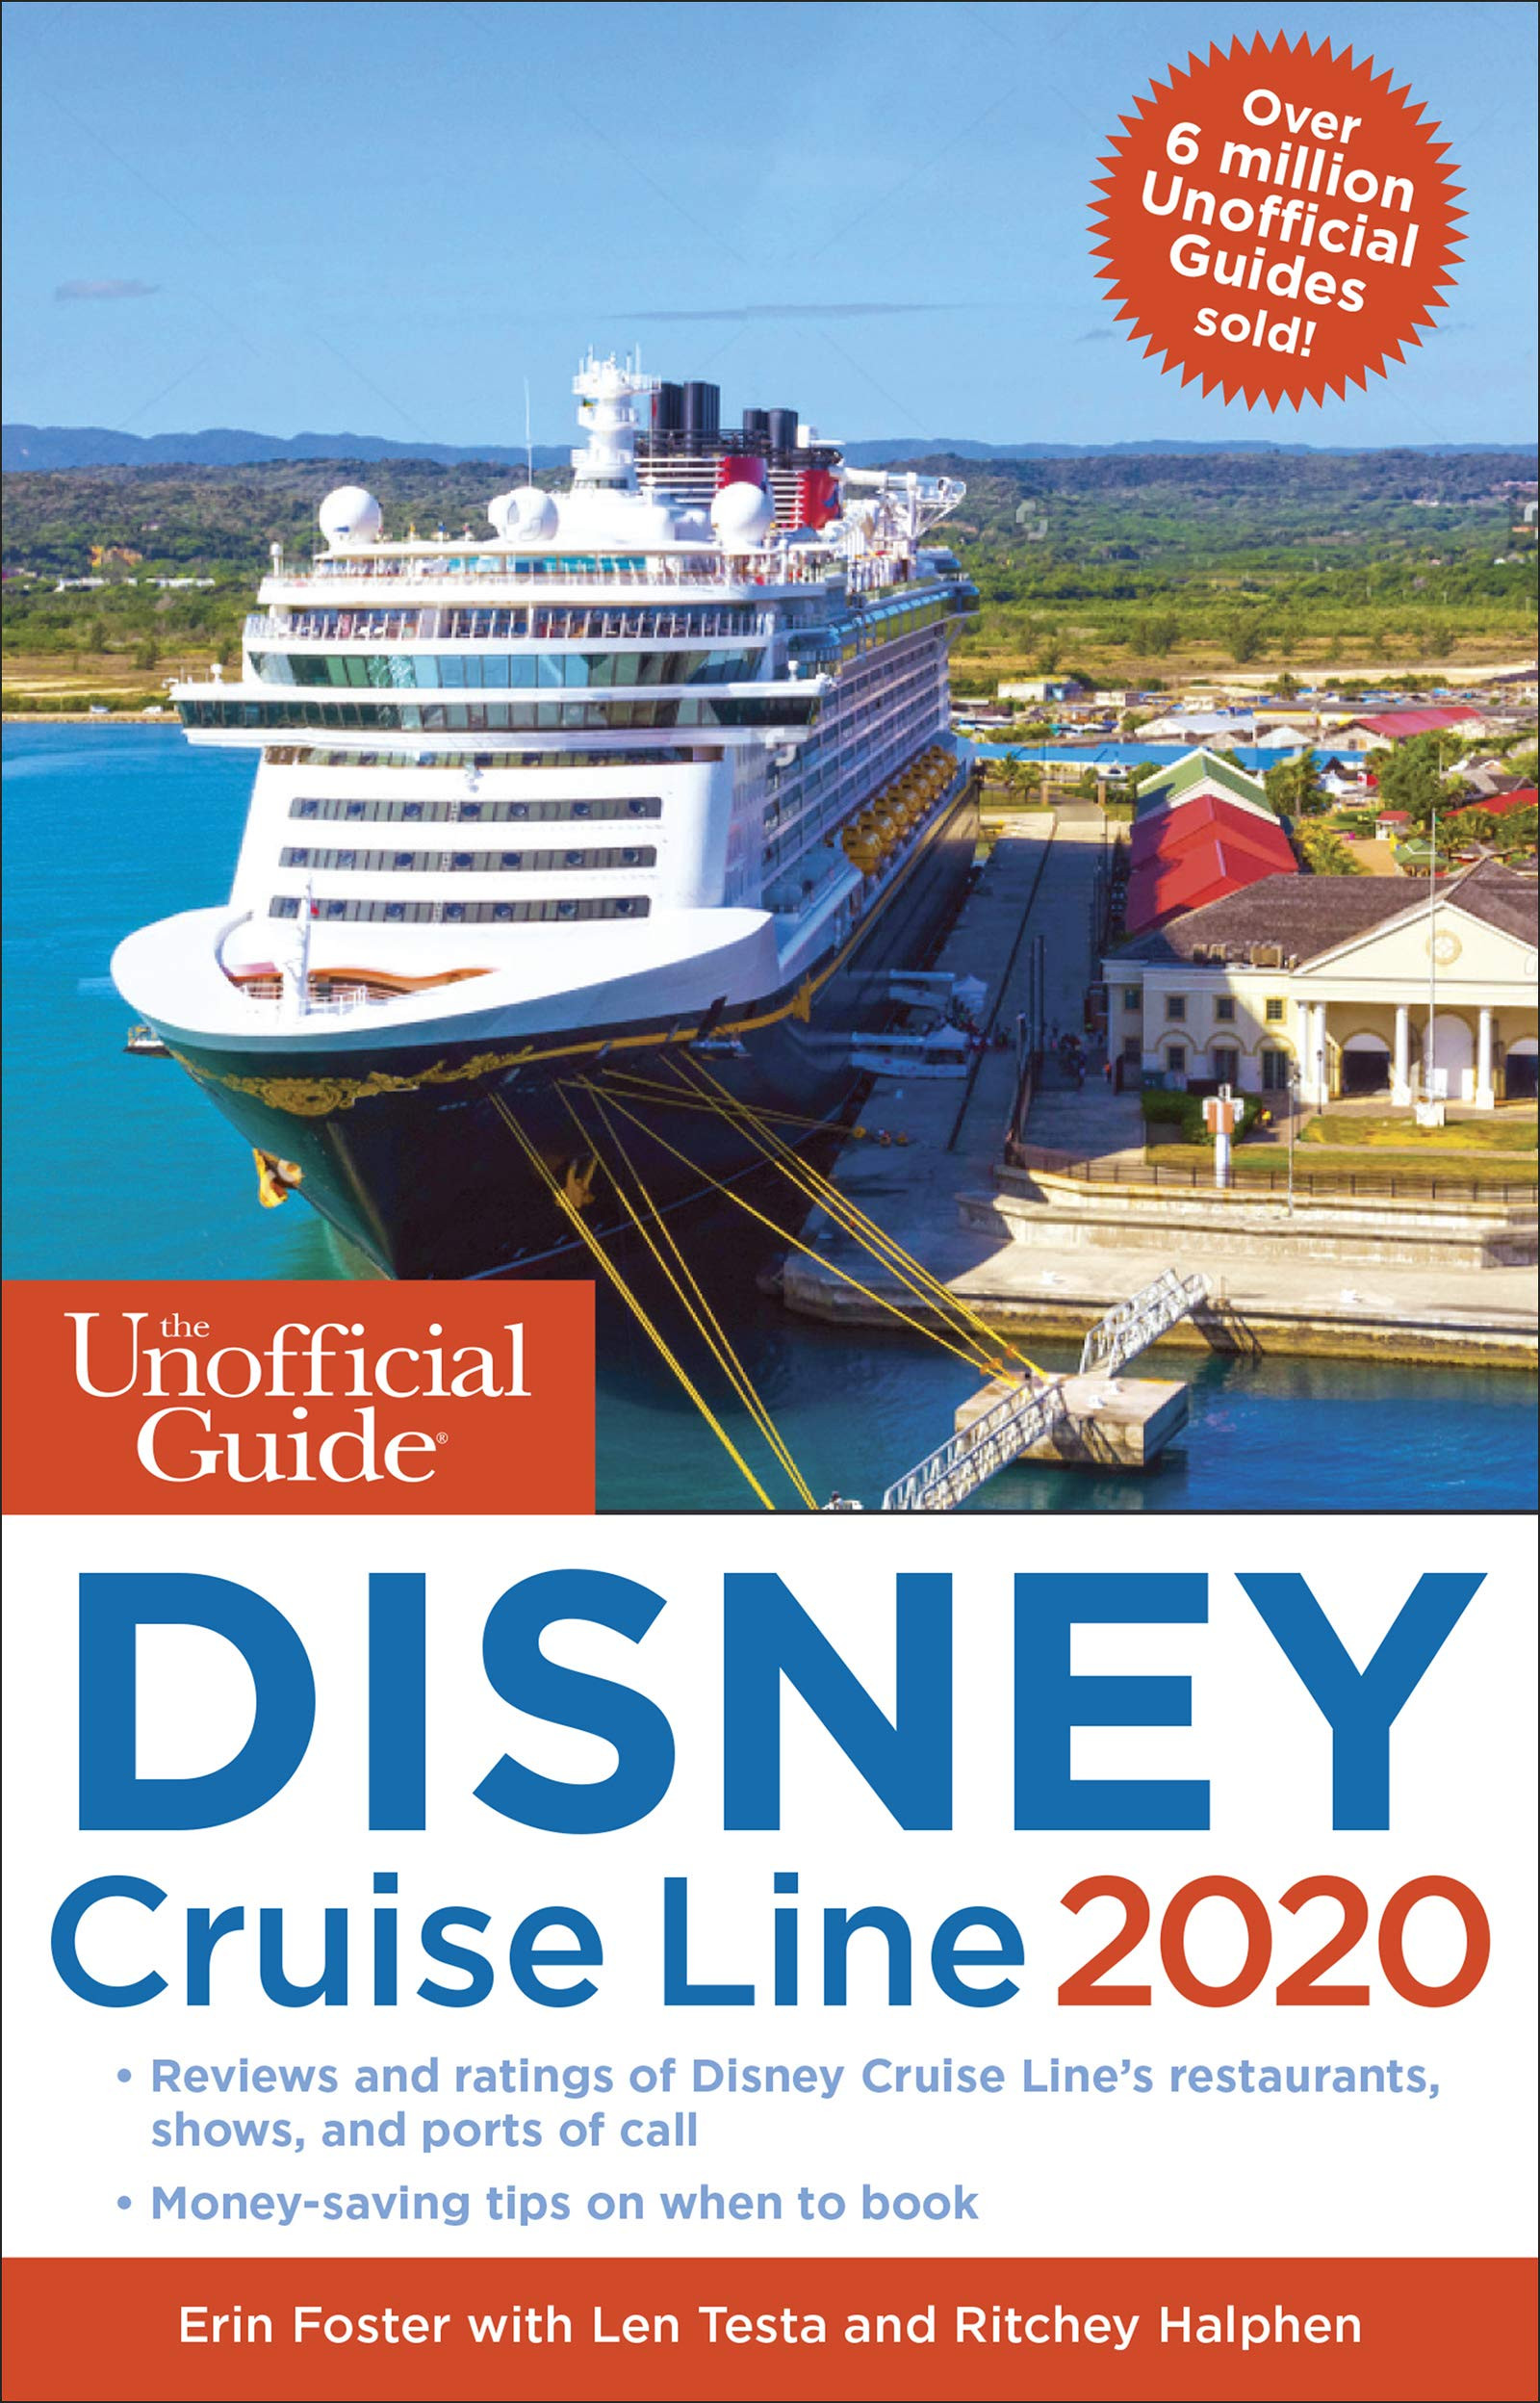 Disney Cruise 2020.The Unofficial Guide To The Disney Cruise Line 2020